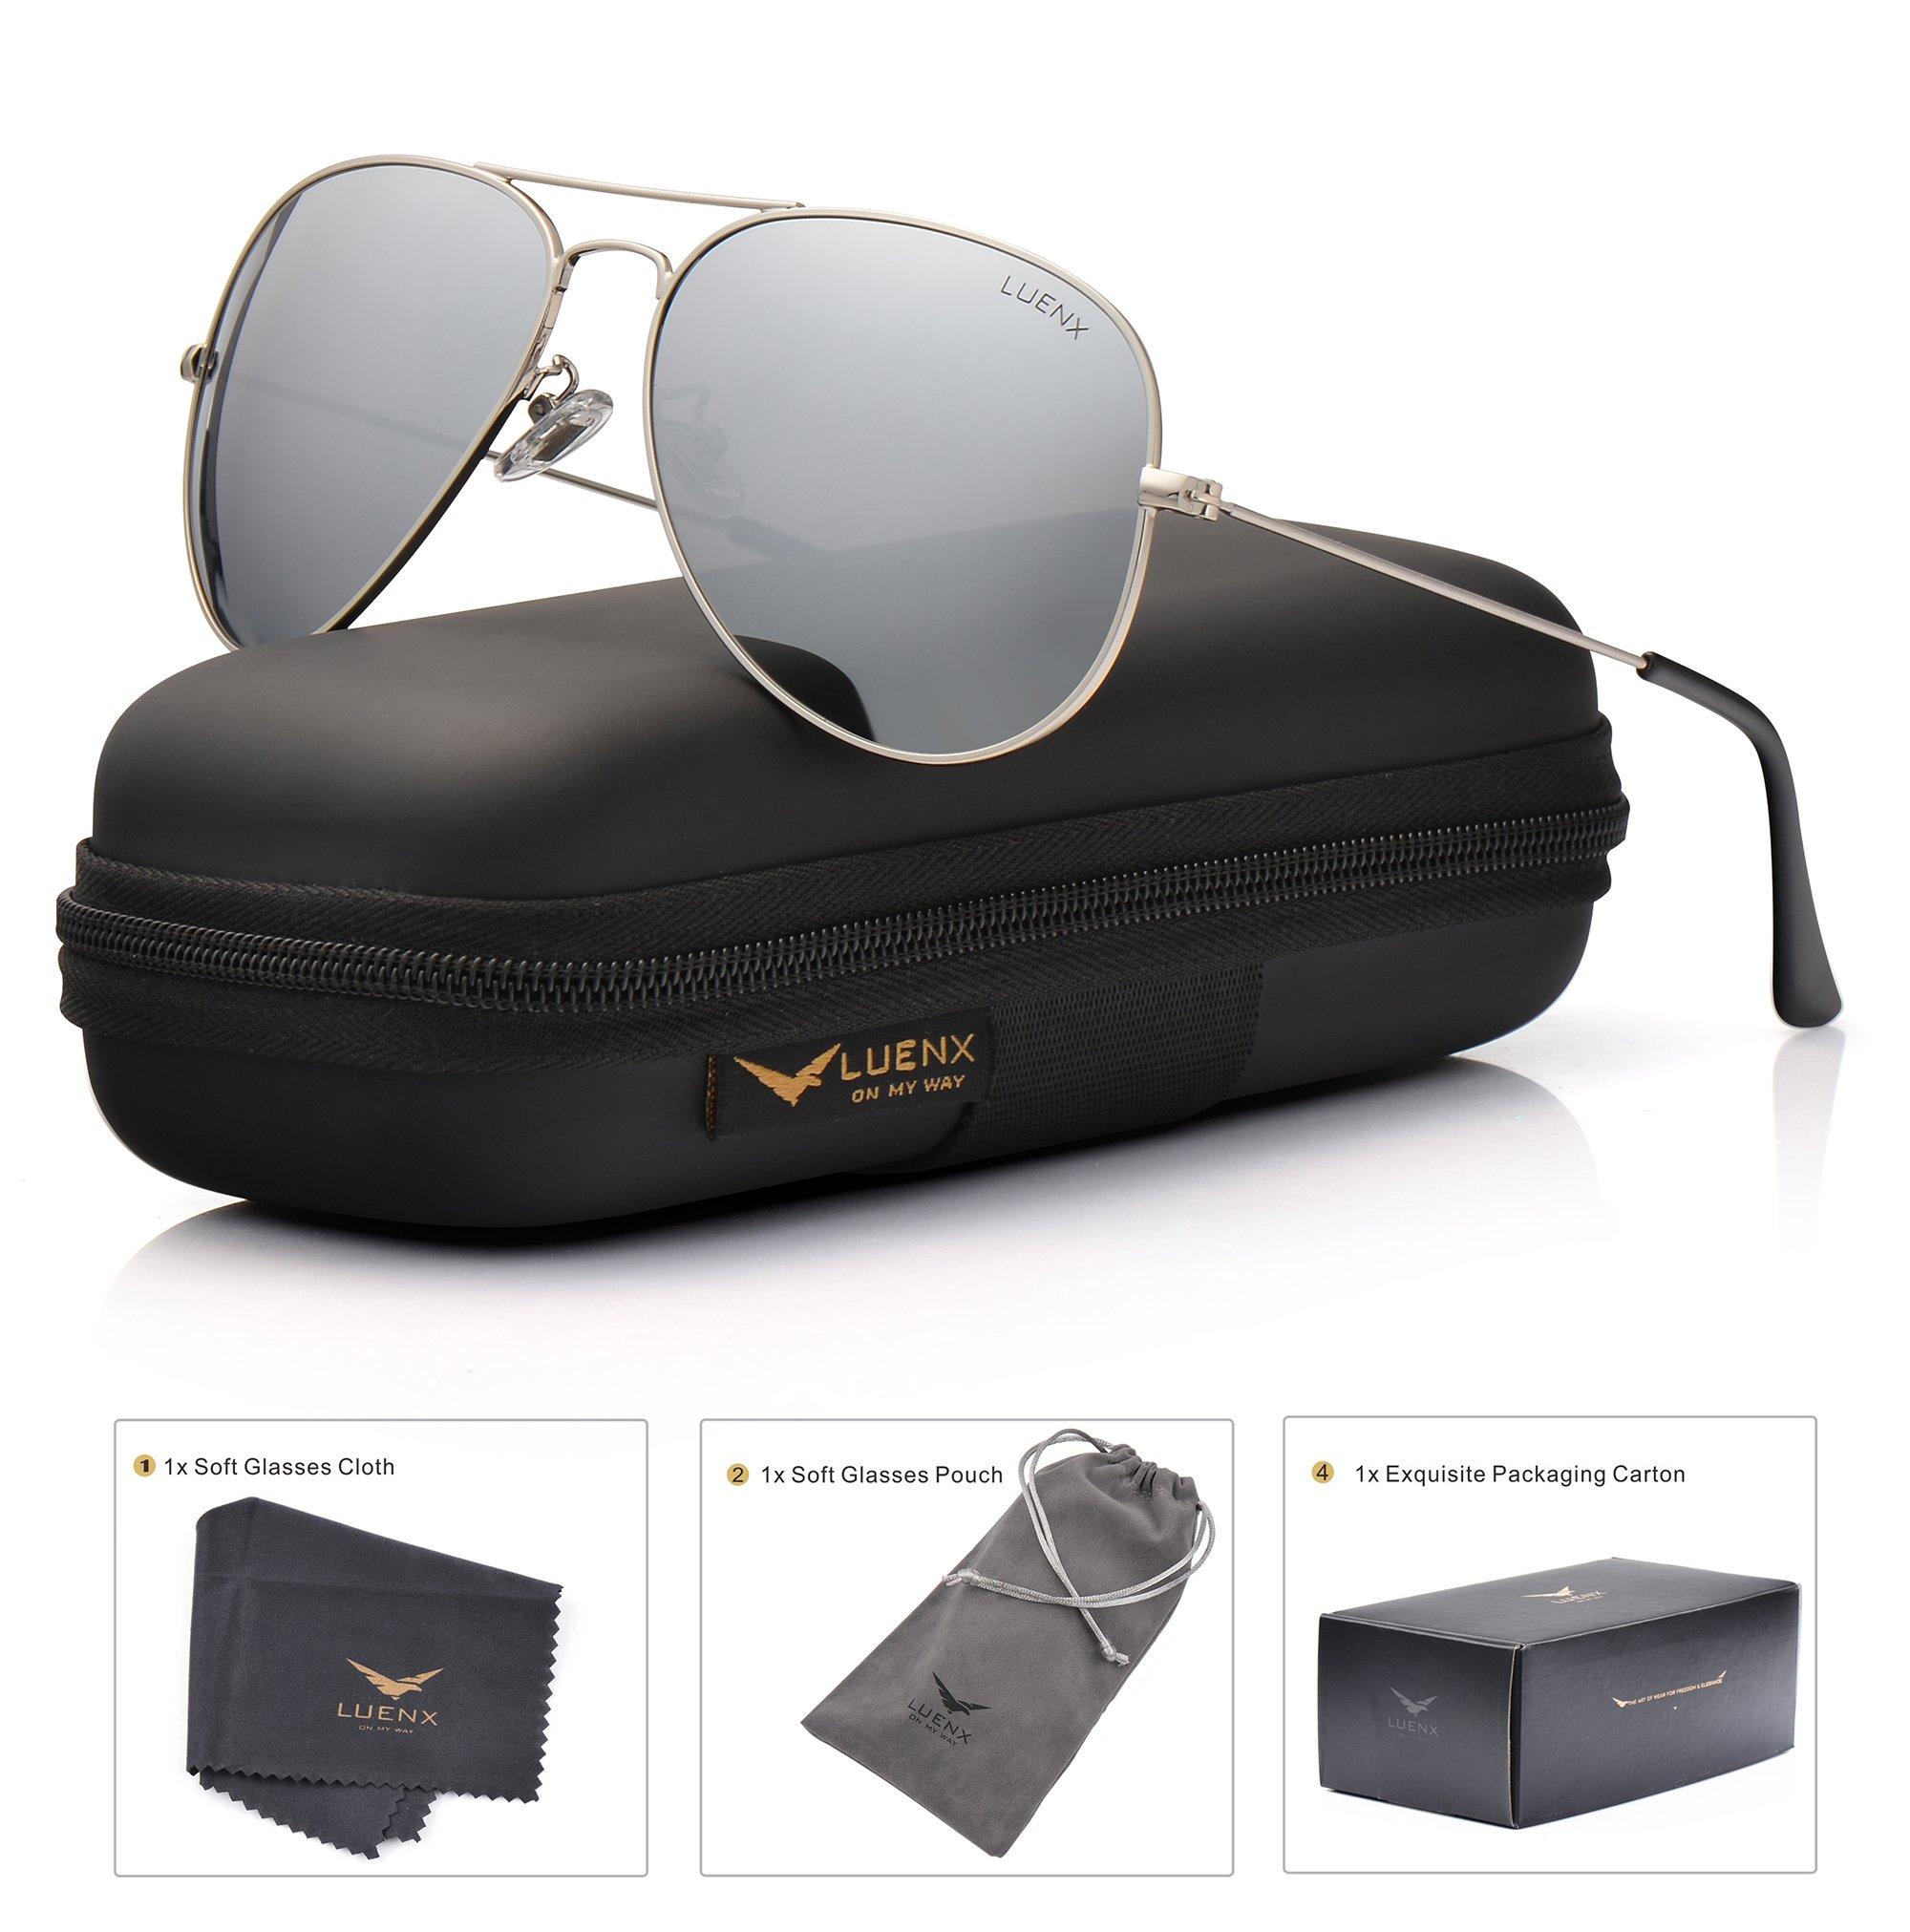 LUENX Mens Womens Aviator Sunglasses Polarized Silver Mirrored Lens Metal Frame with case UV 400 Protection Driving 60mm